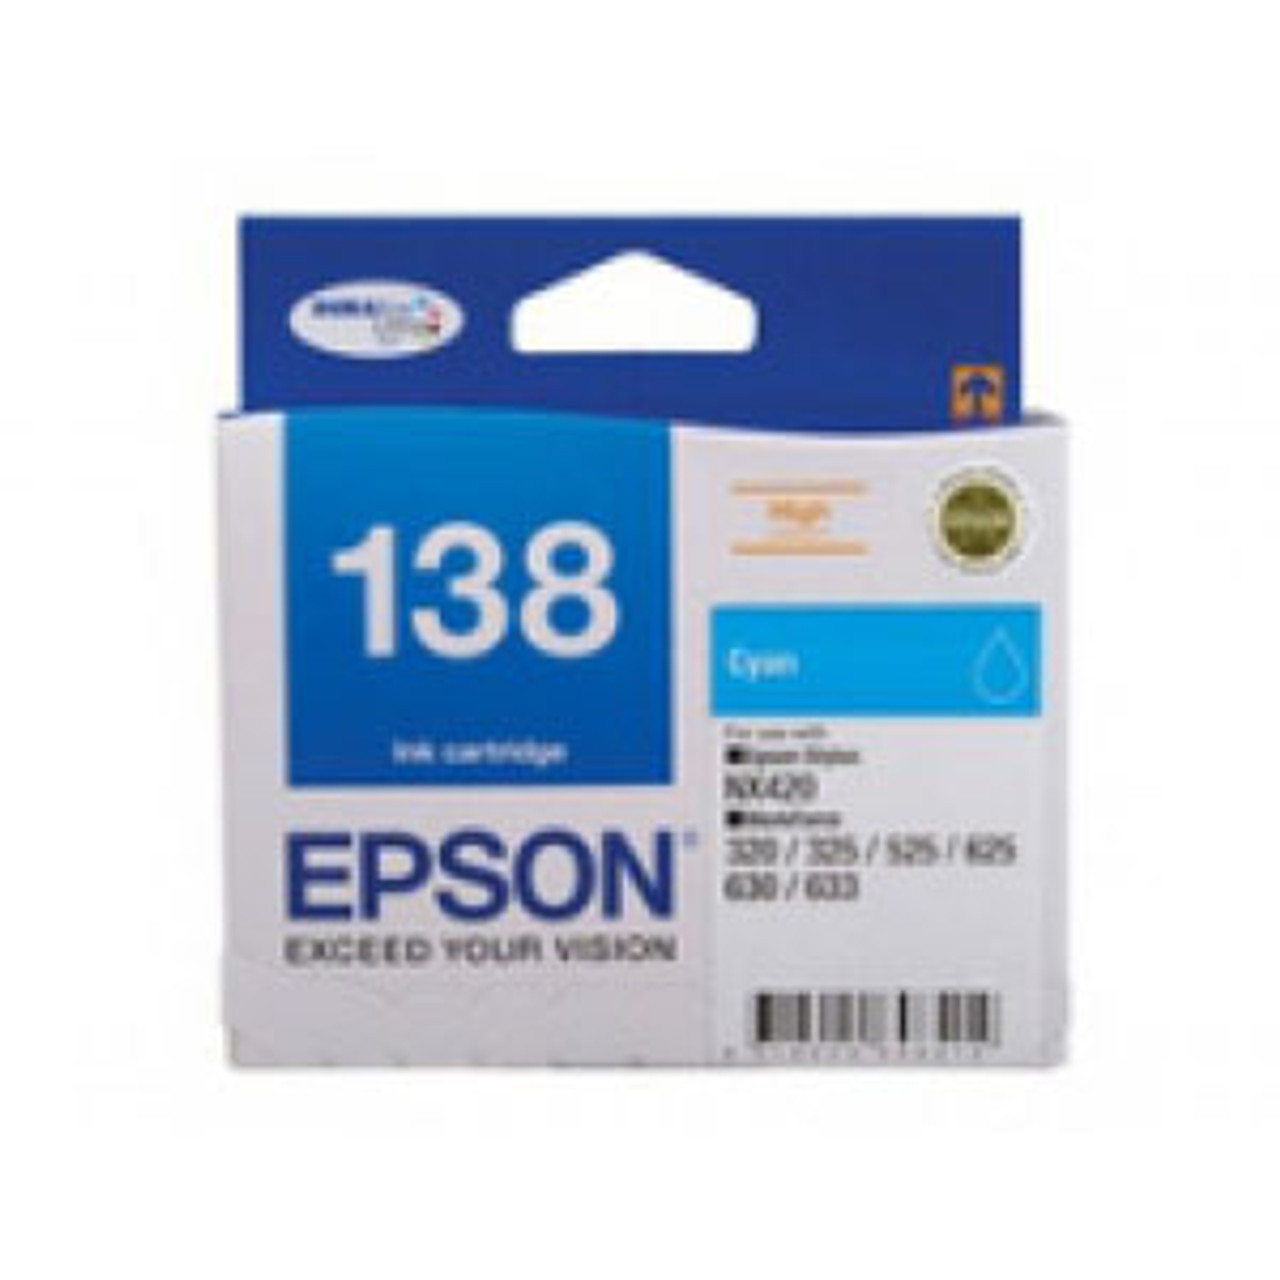 Image for Epson 138 Cyan Ink Cart 420 pages Cyan CX Computer Superstore